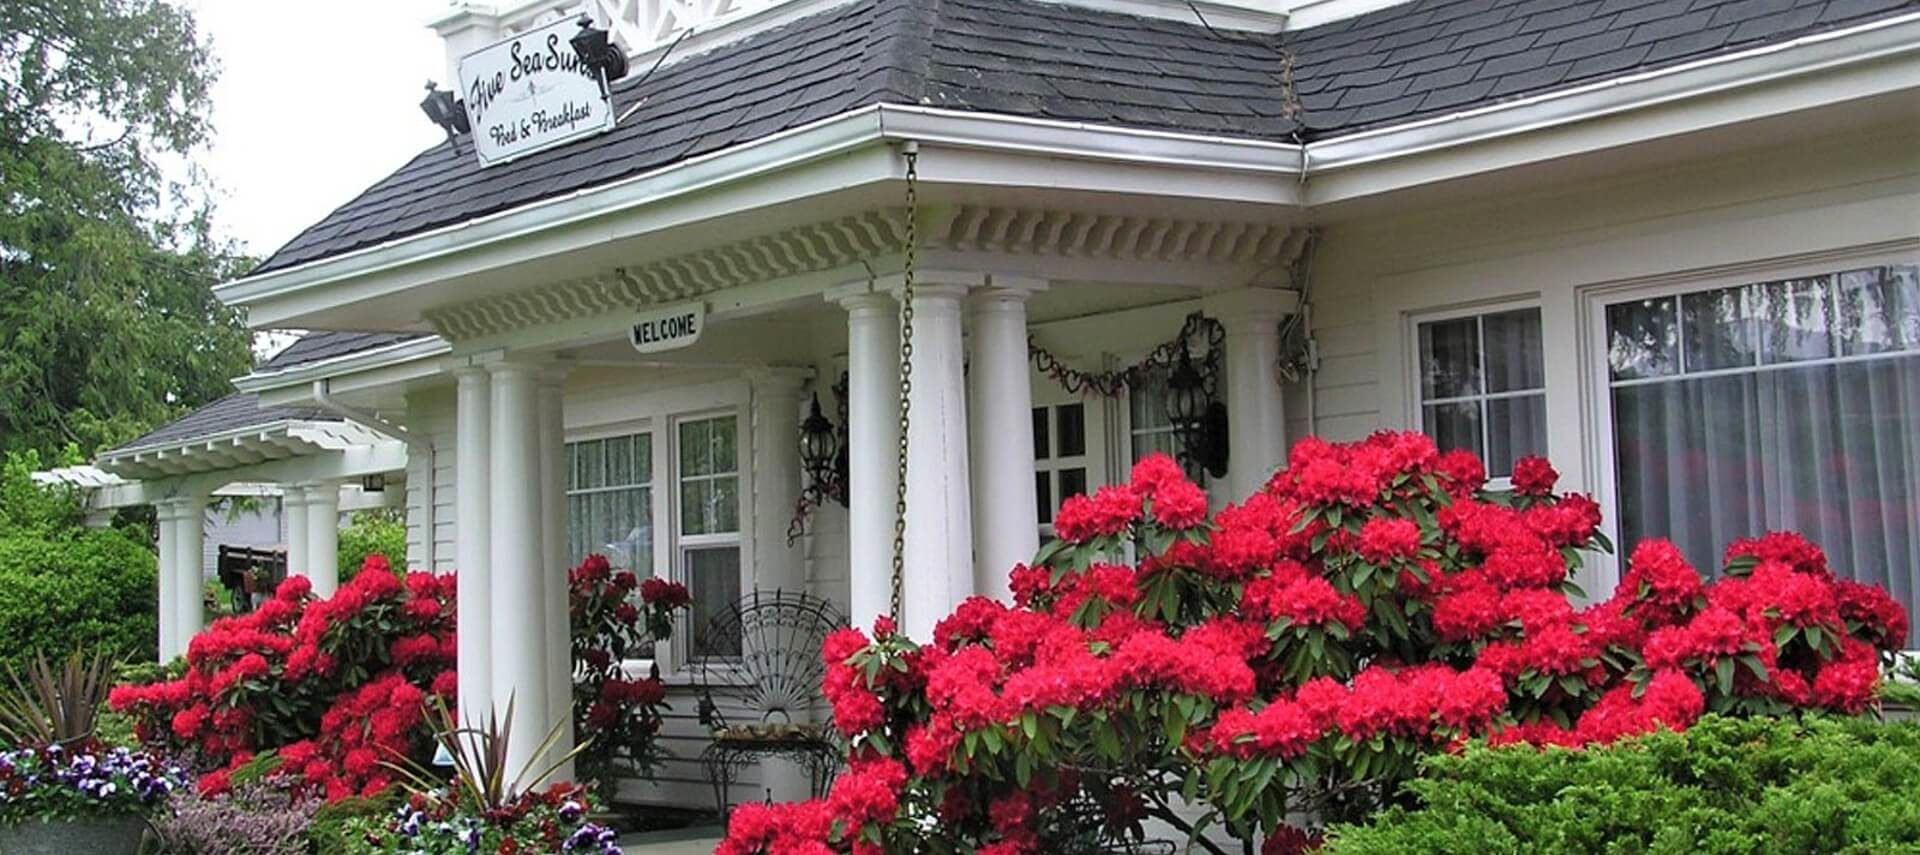 Front facade of a beautiful white home with columns, front porch flanked with large bushes full of red flowers